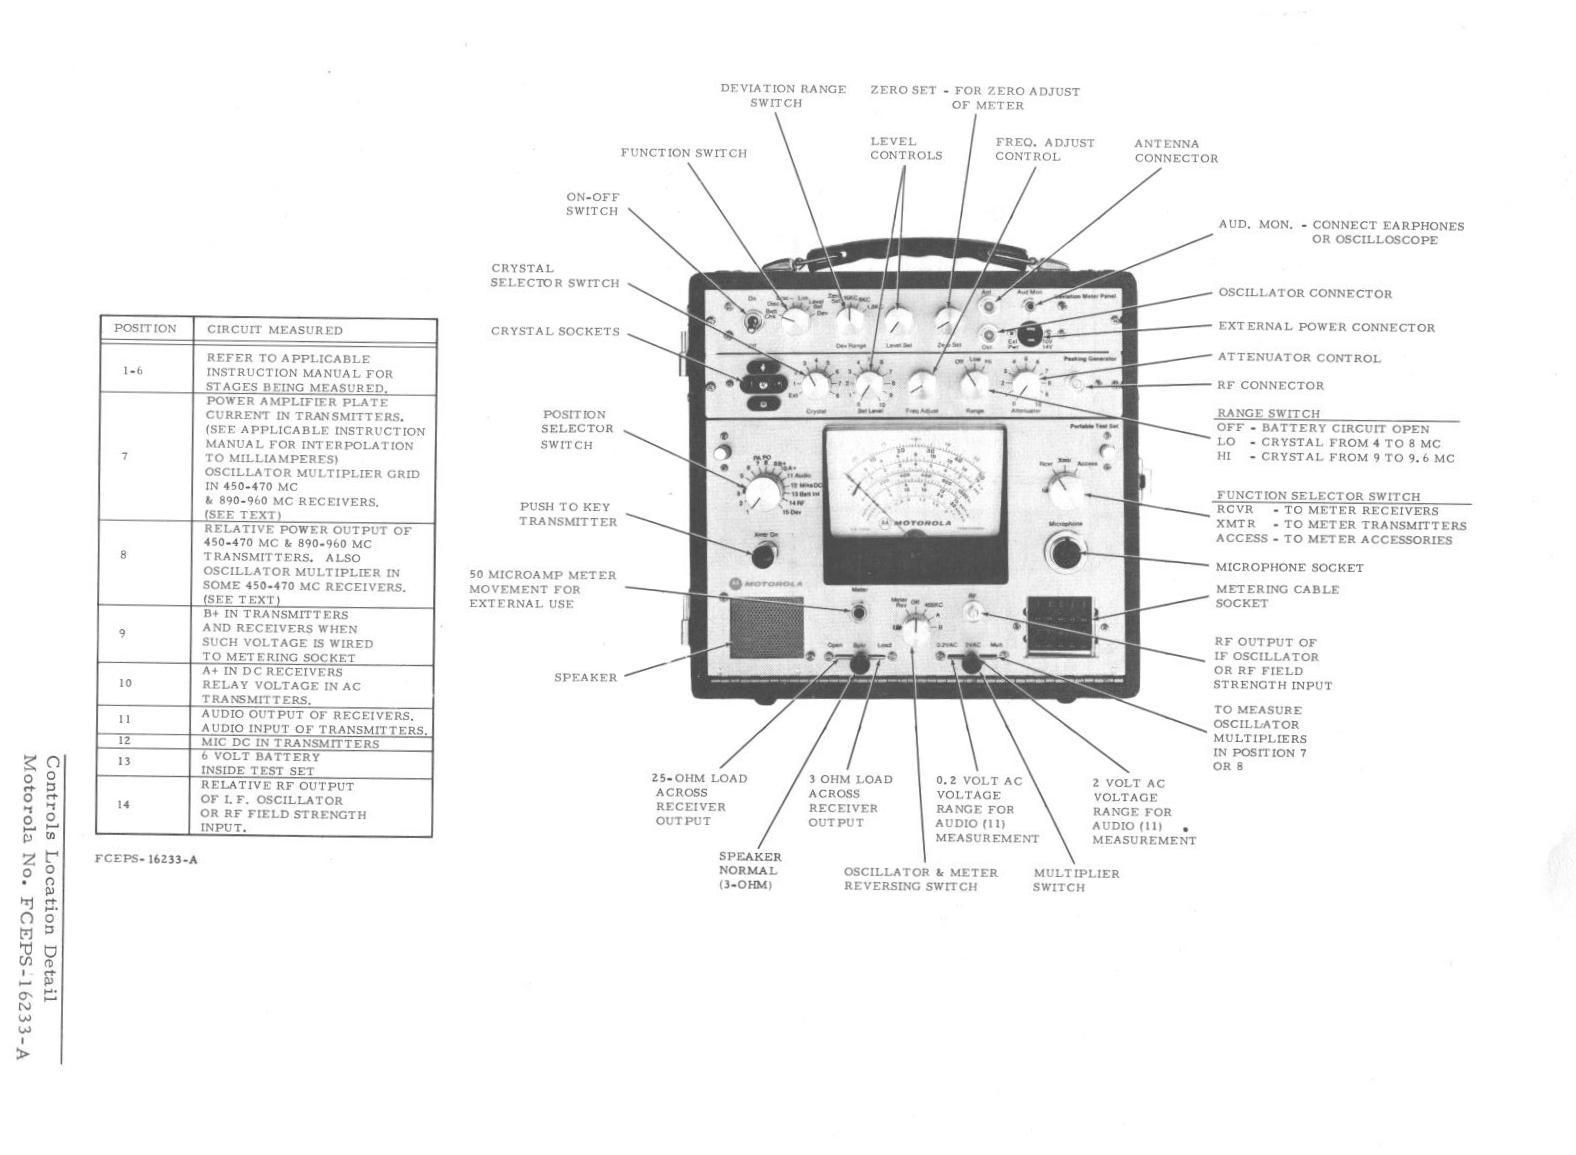 Motorola Test Set Information Index Crystal Tester Diagram A Of What Switch Does